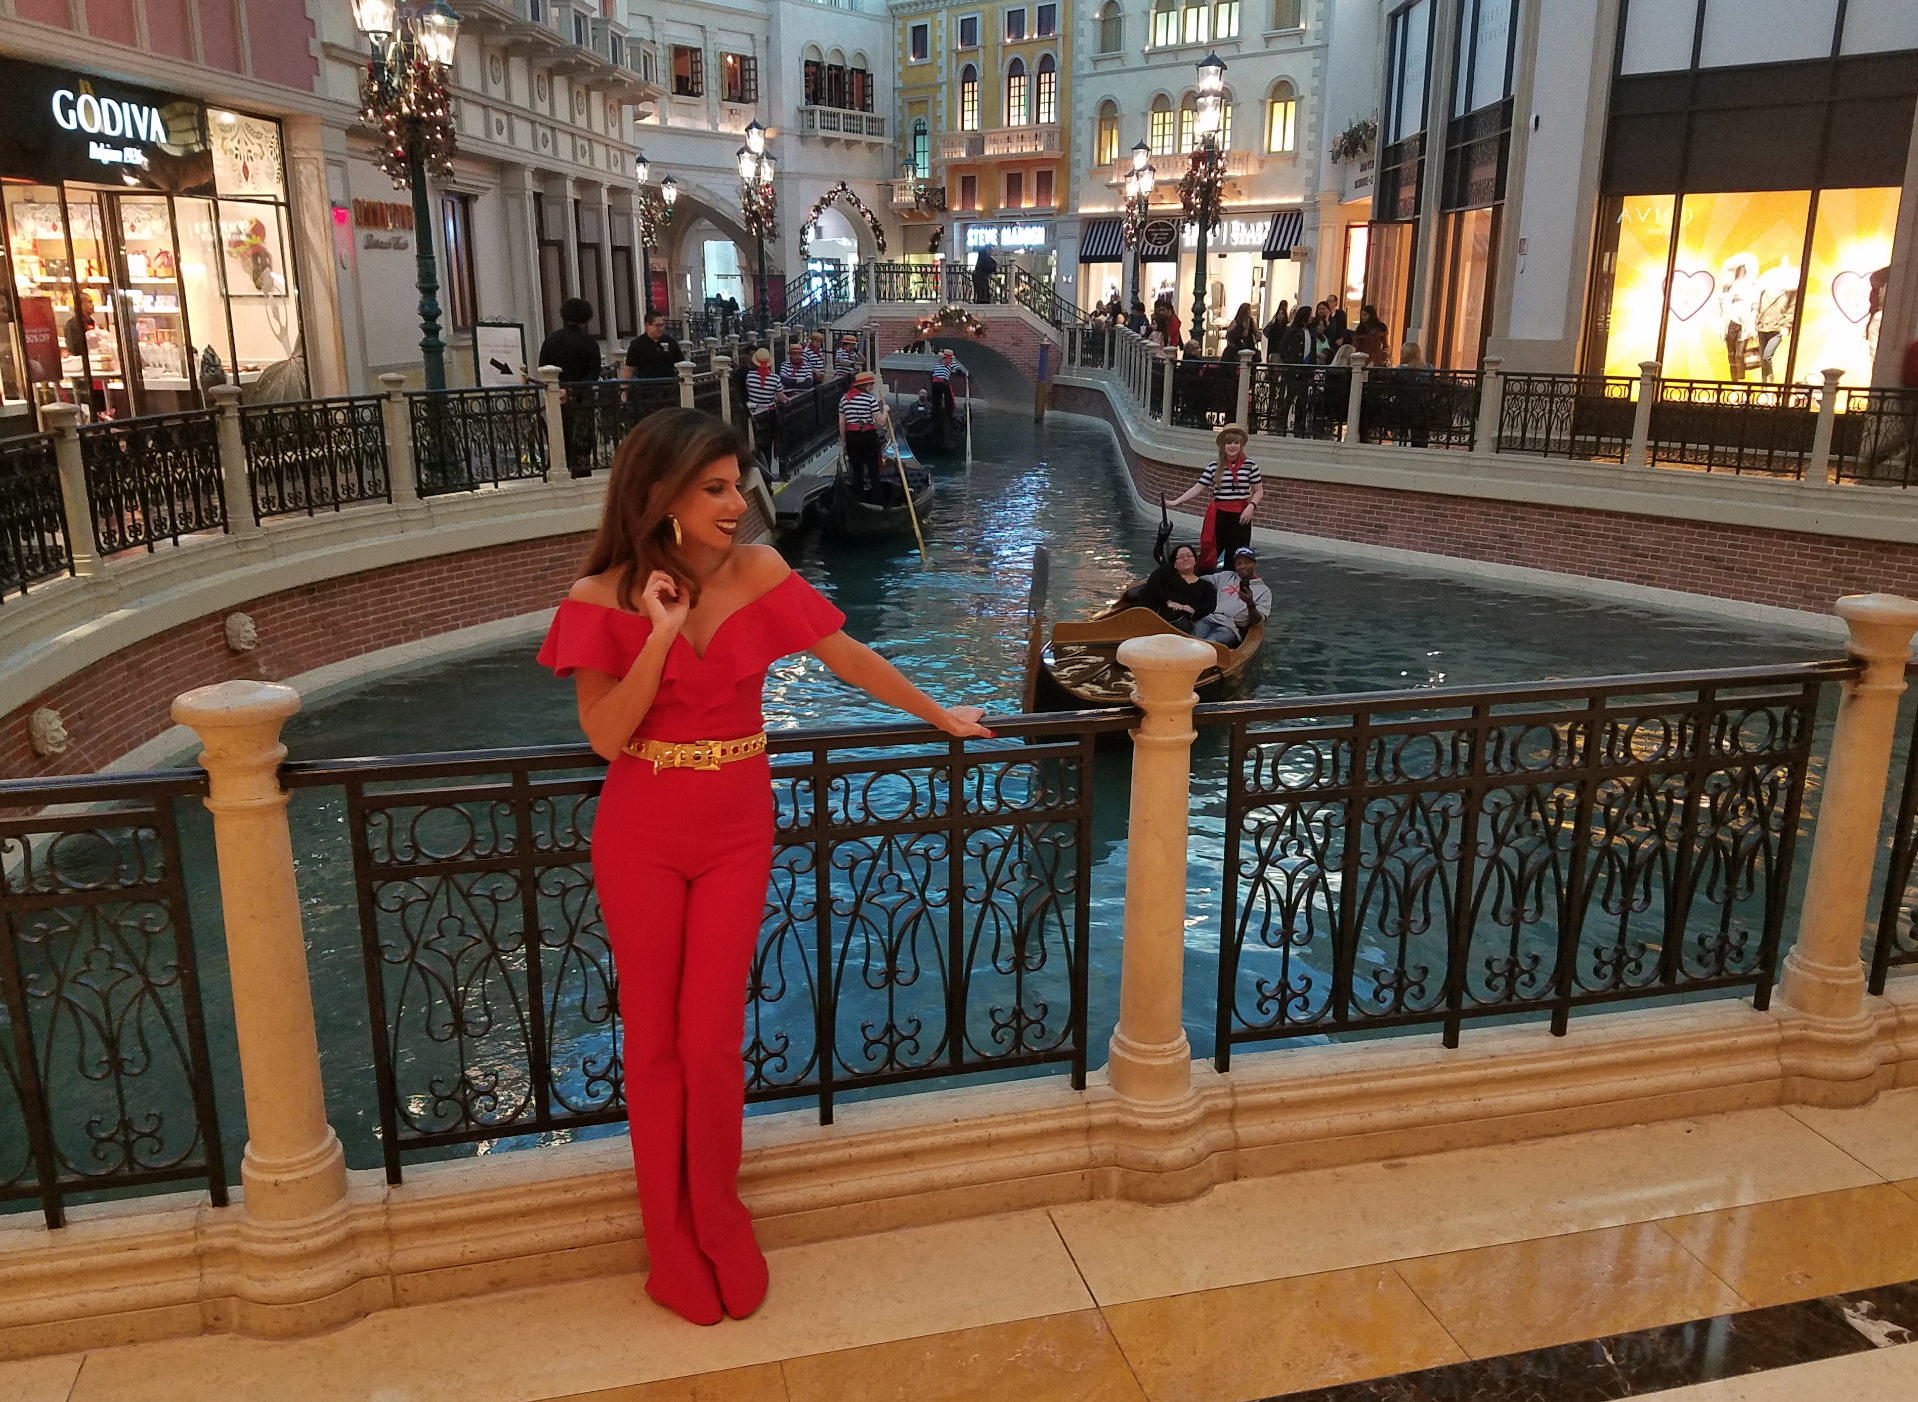 Photoshoot in the Venetian Hotel - Grand Canales.